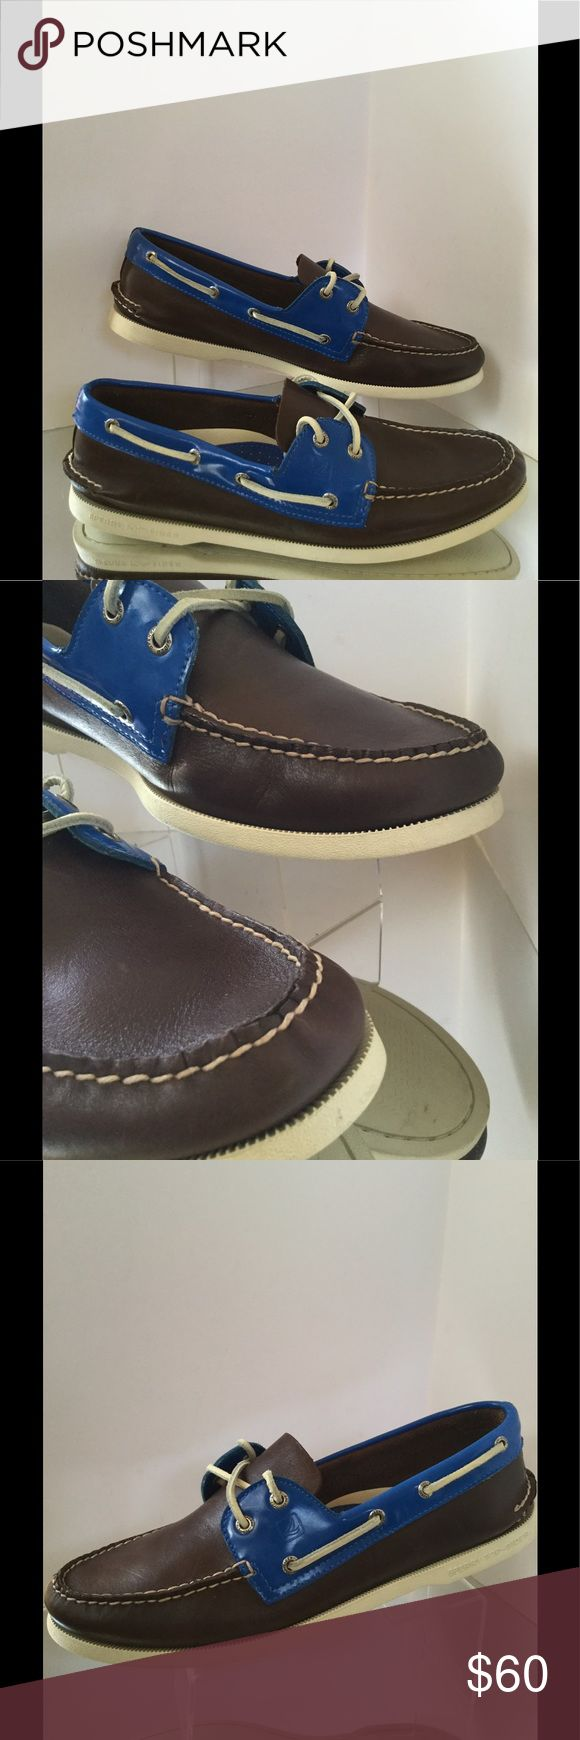 Sperry Topsiders Mens Brown/Blue  Leather size 13 New in box Sperry Topsider Brown and blue leather size 13 shoe. More details in last picture in roll. Sperry Top-Sider Shoes Boat Shoes